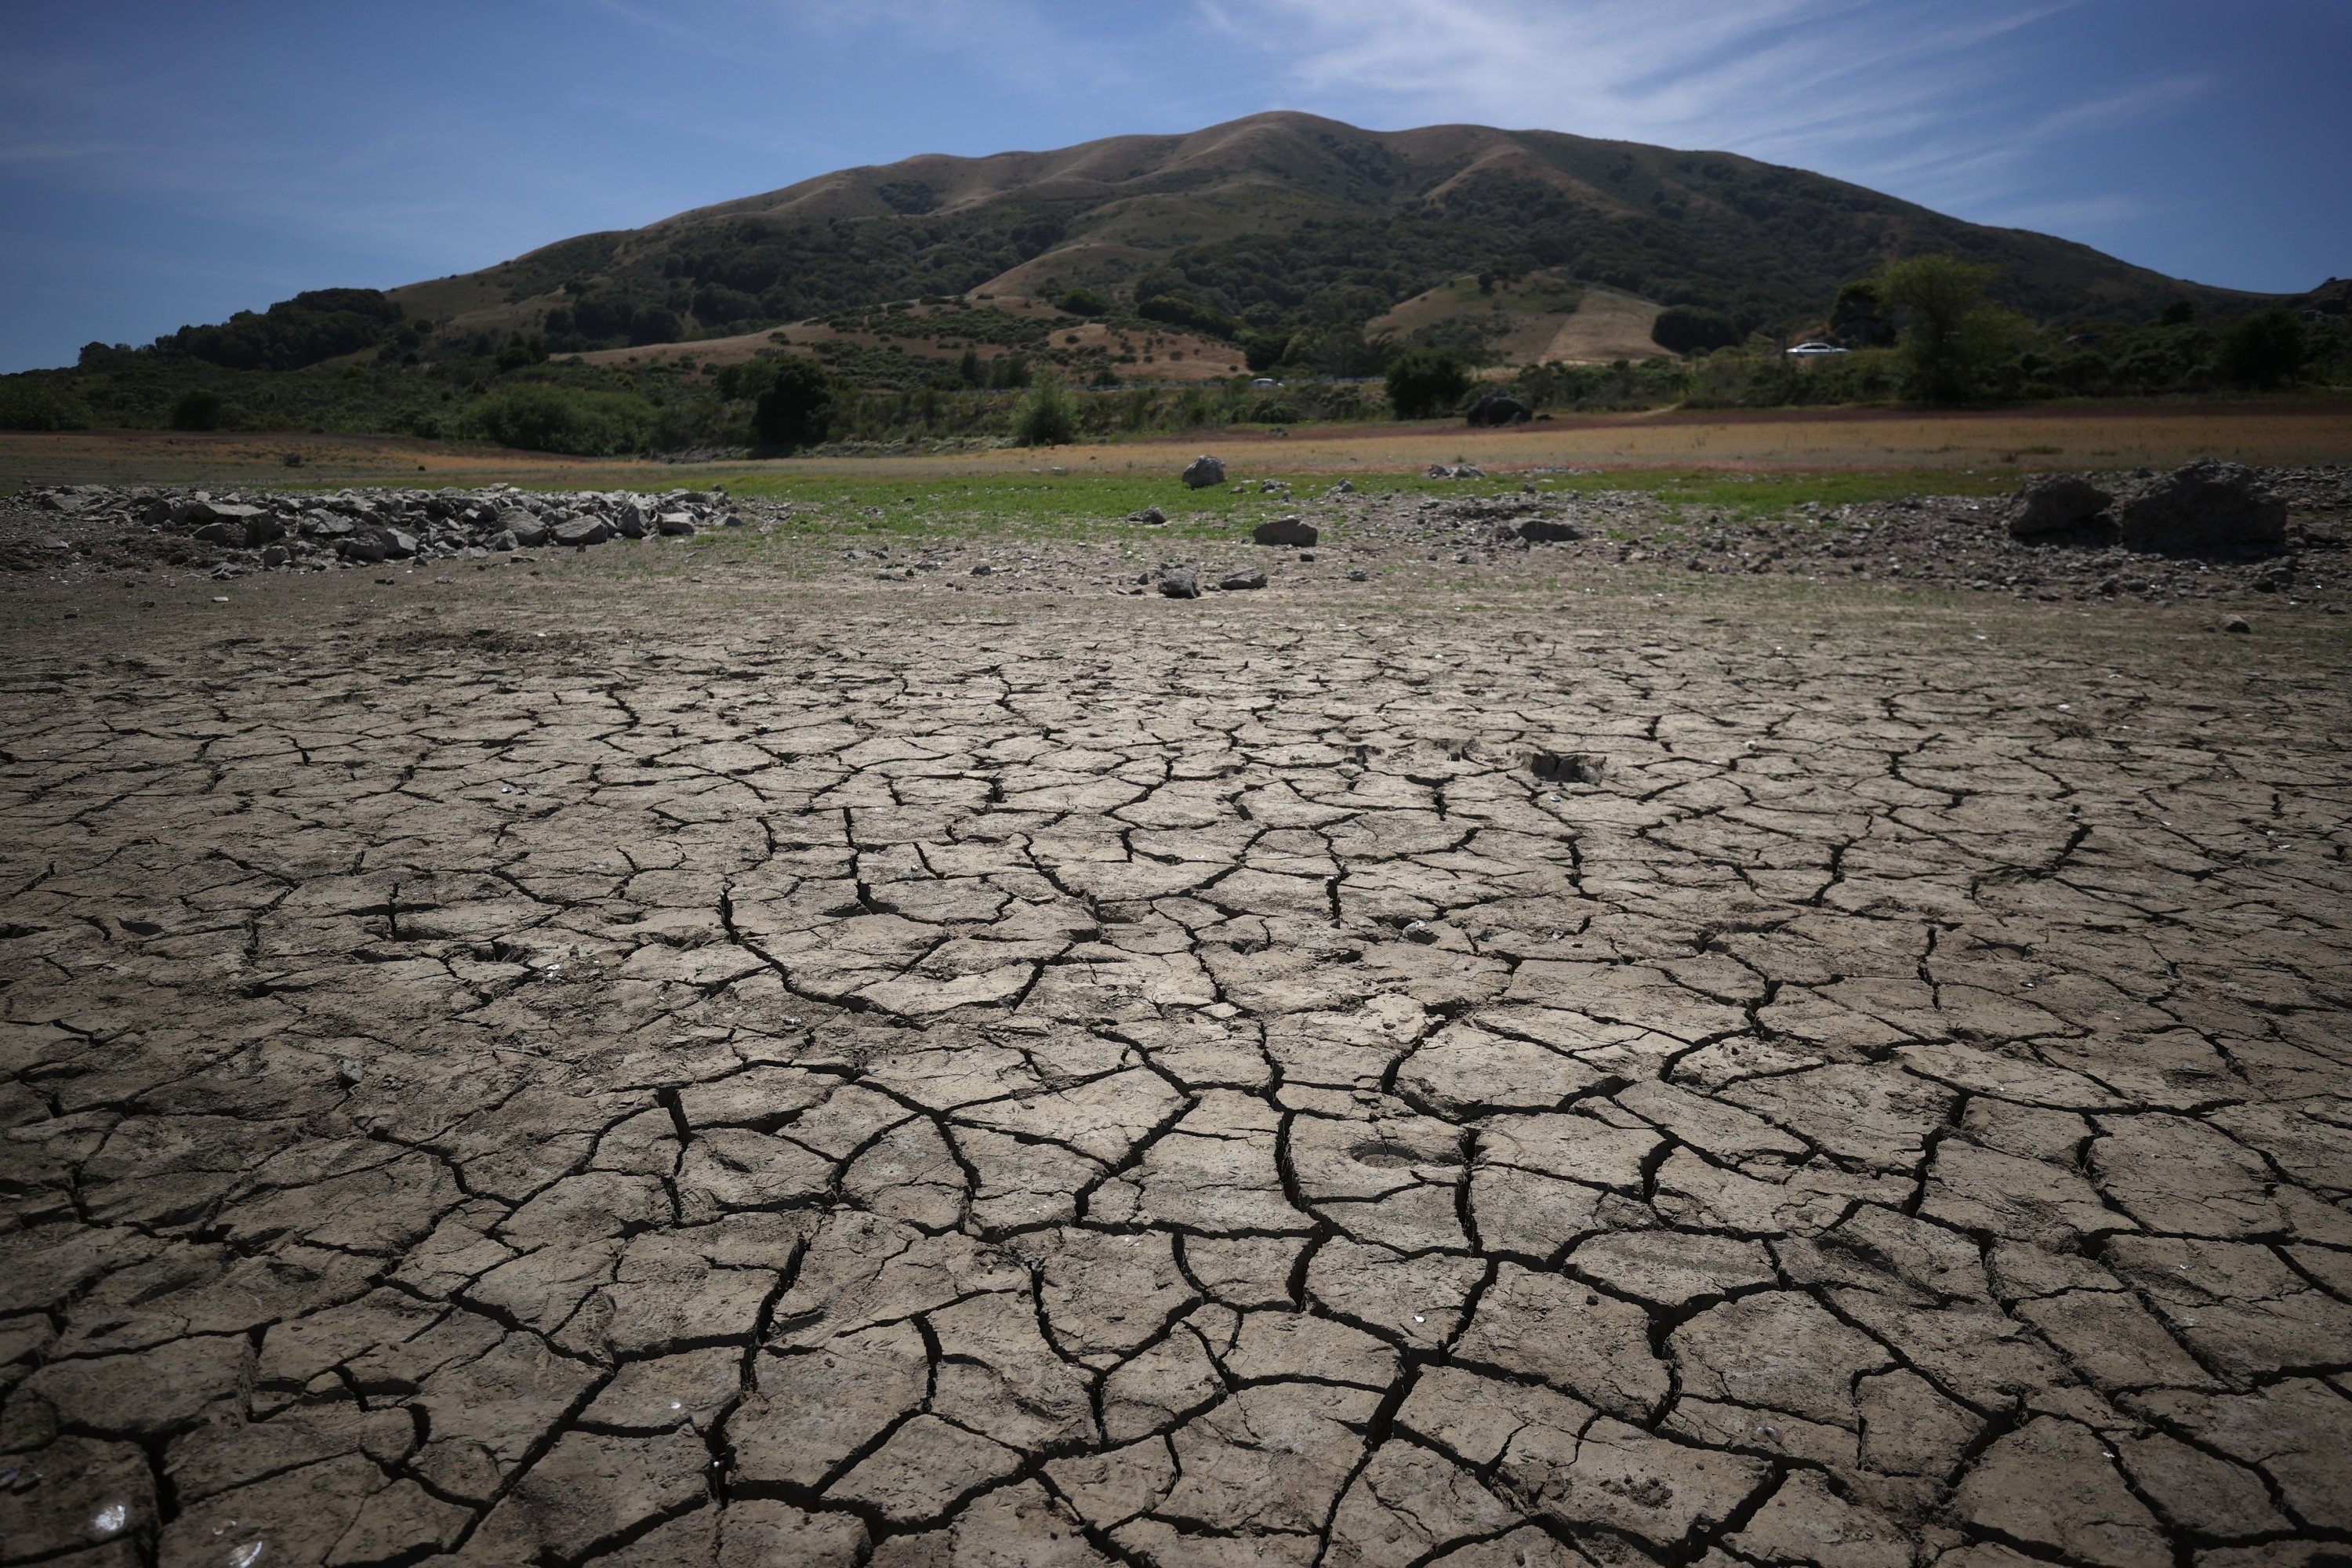 Dry cracked earth as a result of drought at Nicasio Reservoir in Nicasio, California, U.S., on May 28, 2021. (Getty Images)